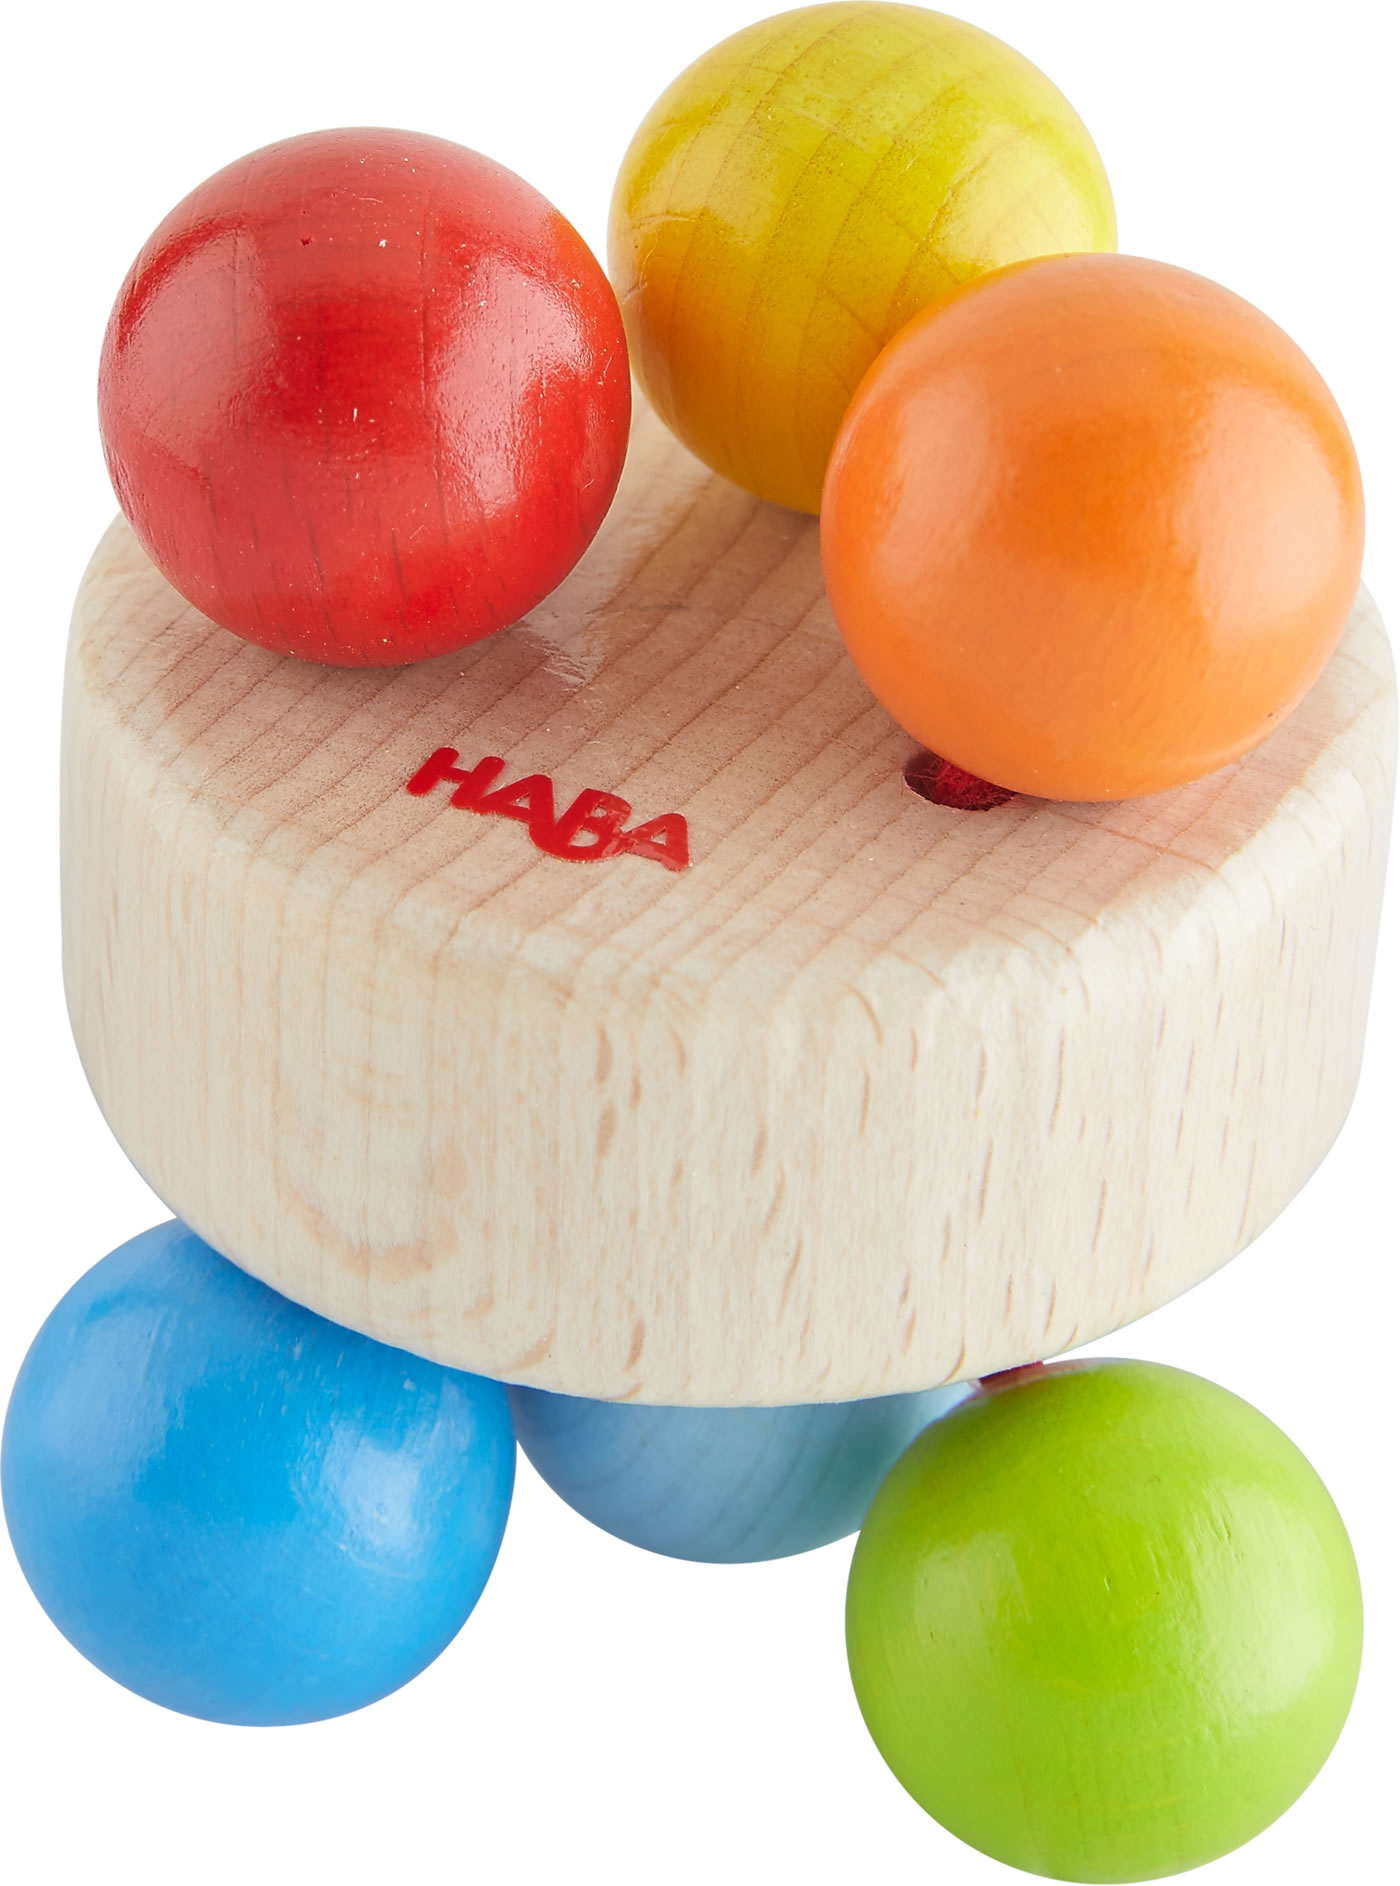 Haba Clutching Toy Colorfuls Balls 304731